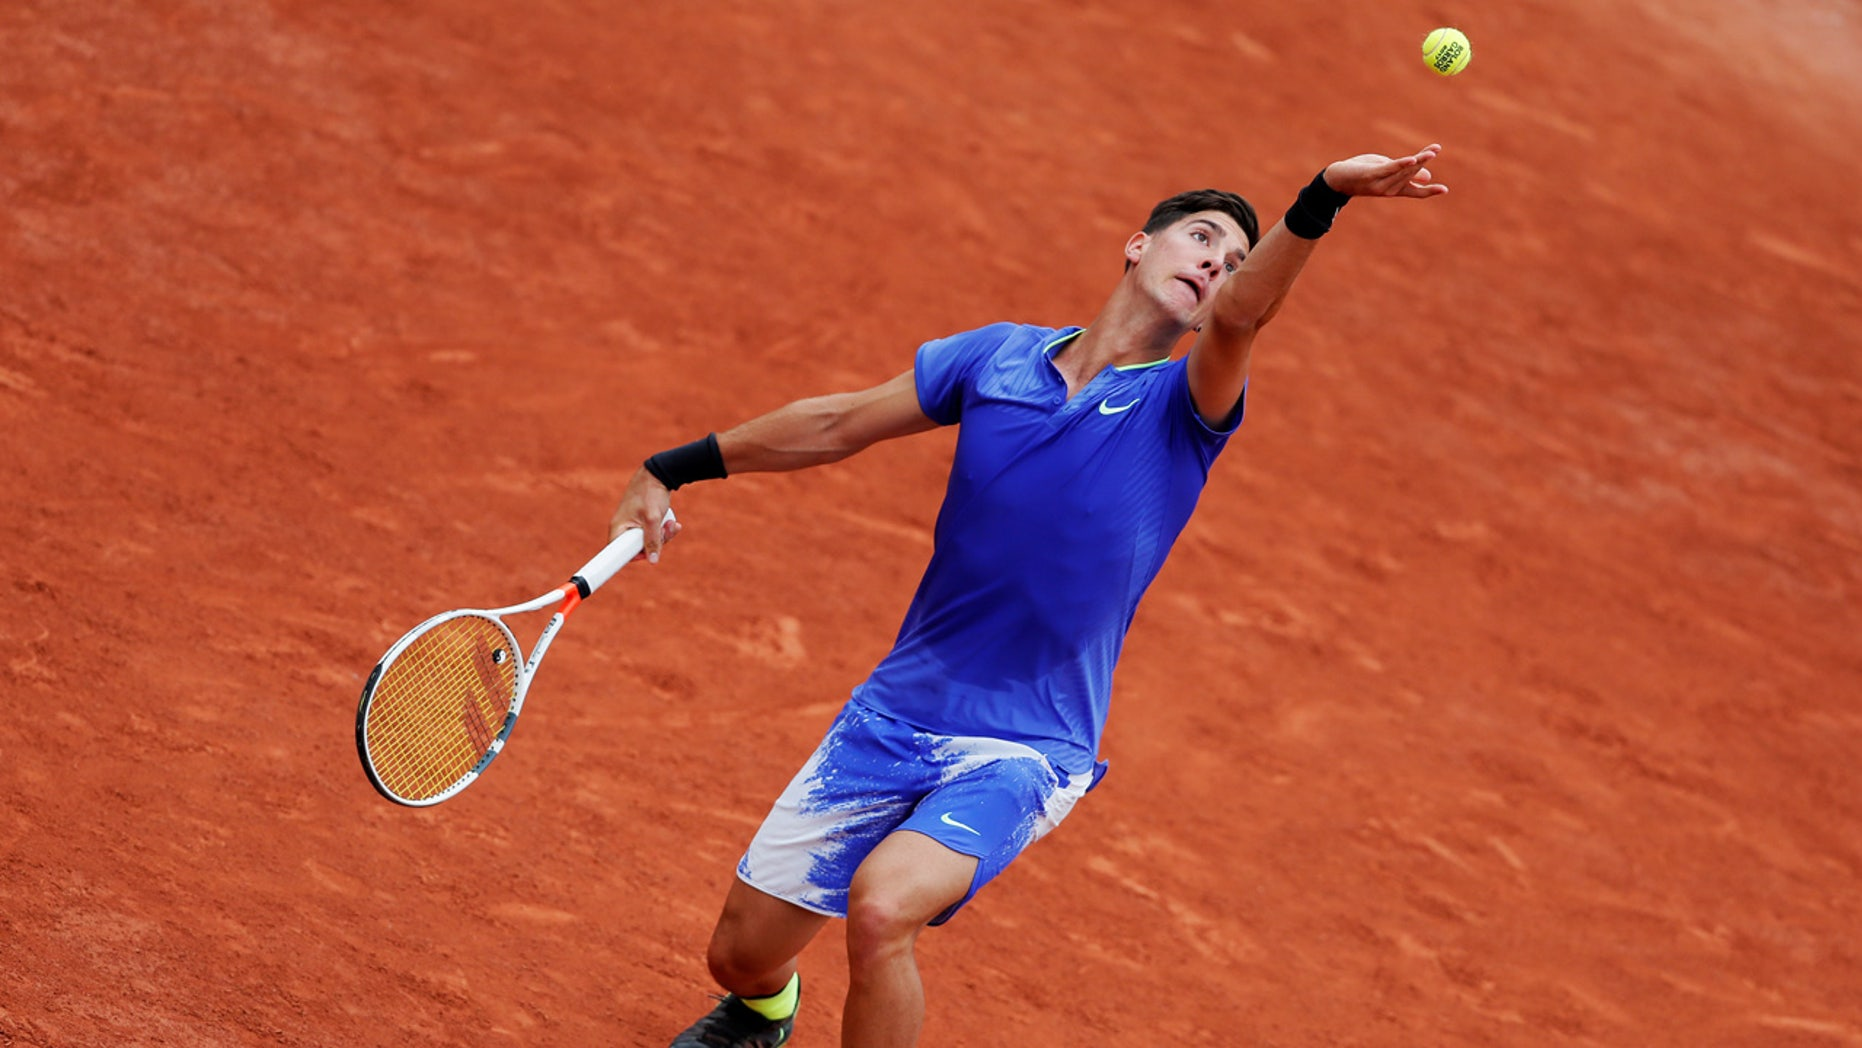 Kokkinakis' first round match in the French Open